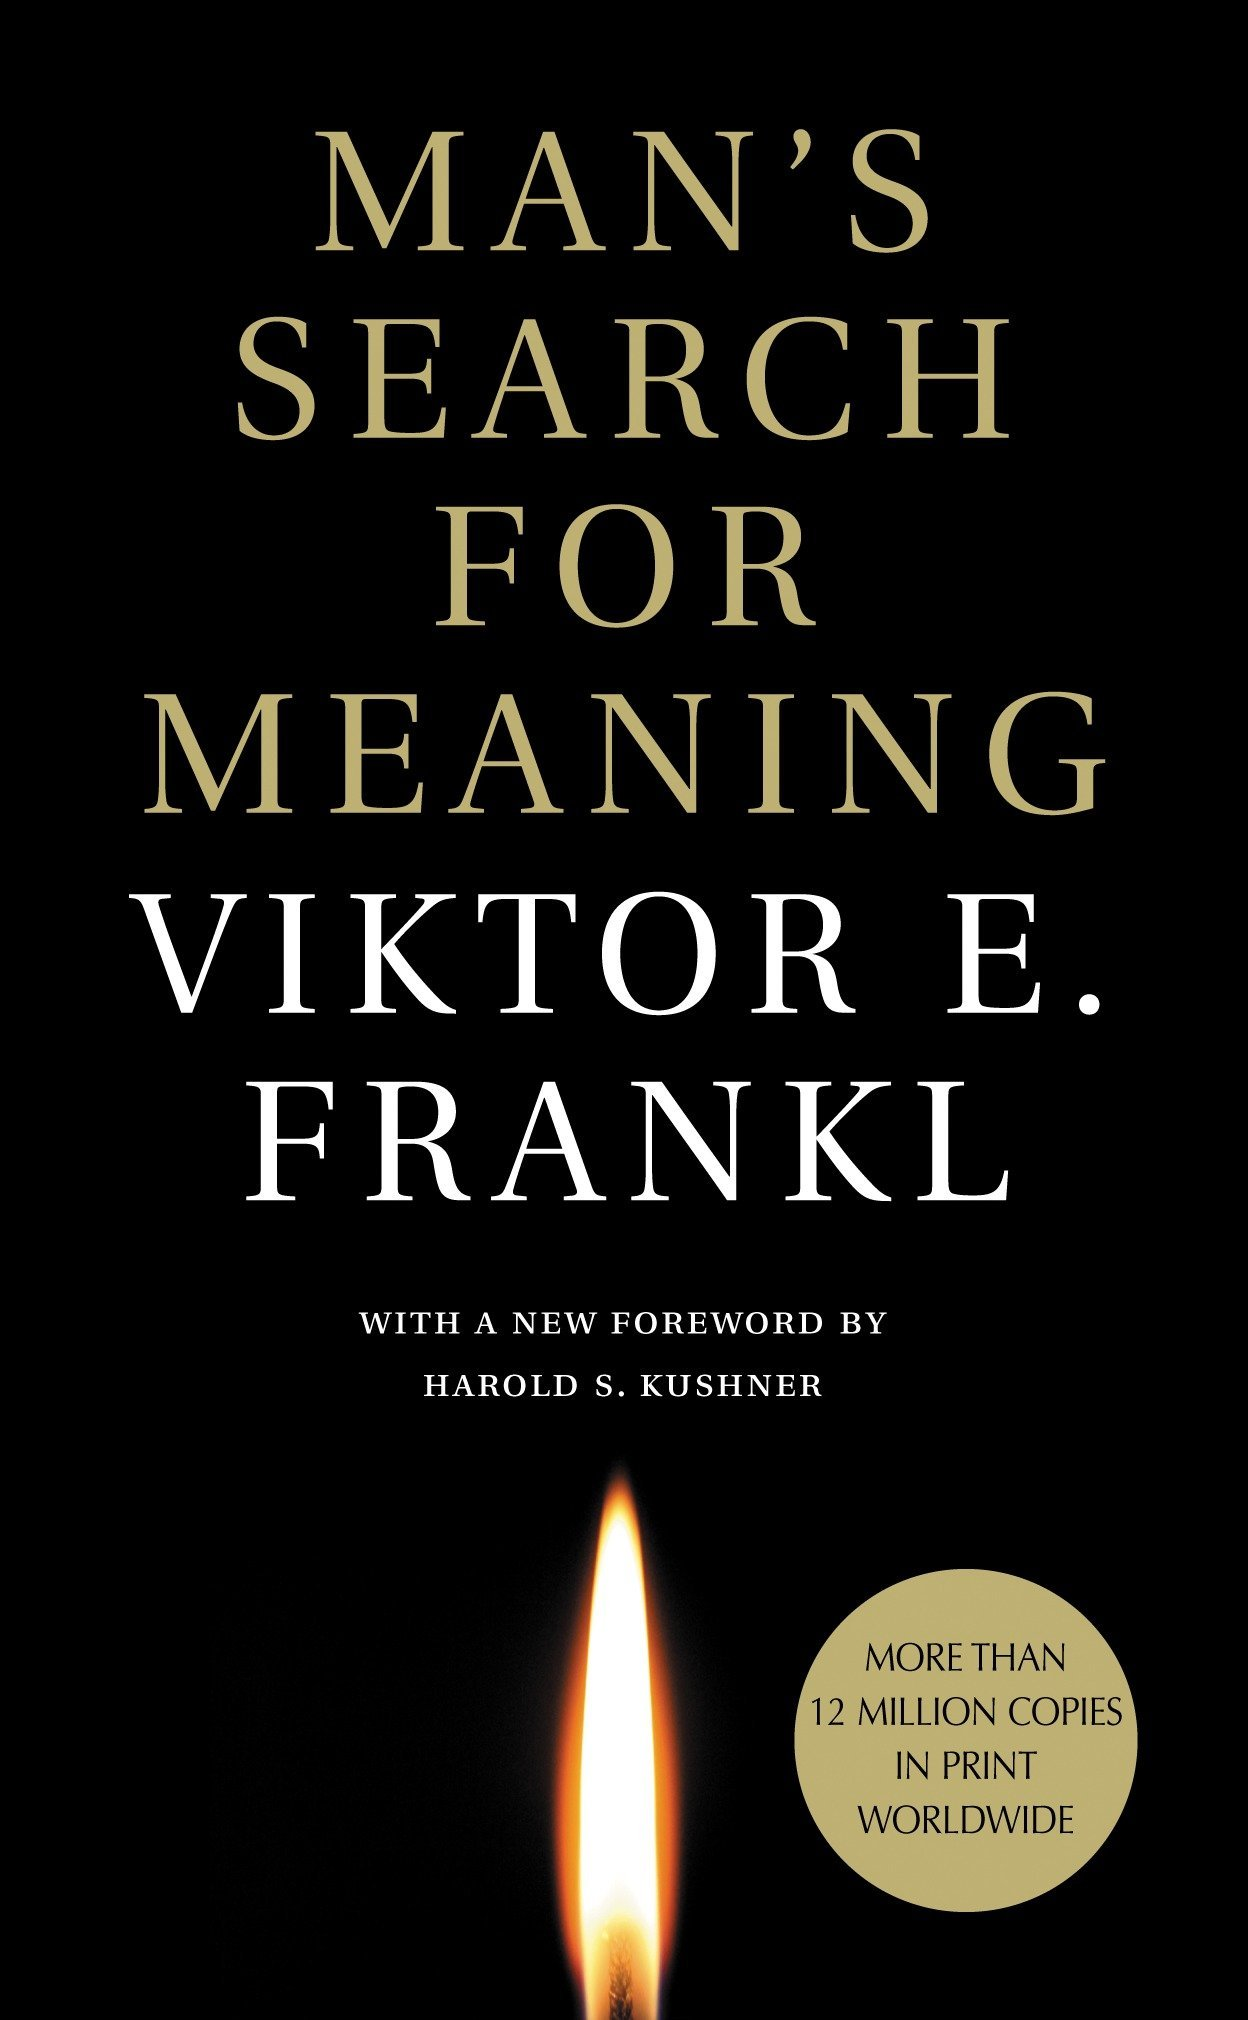 Man's Search for Meaning book discussion